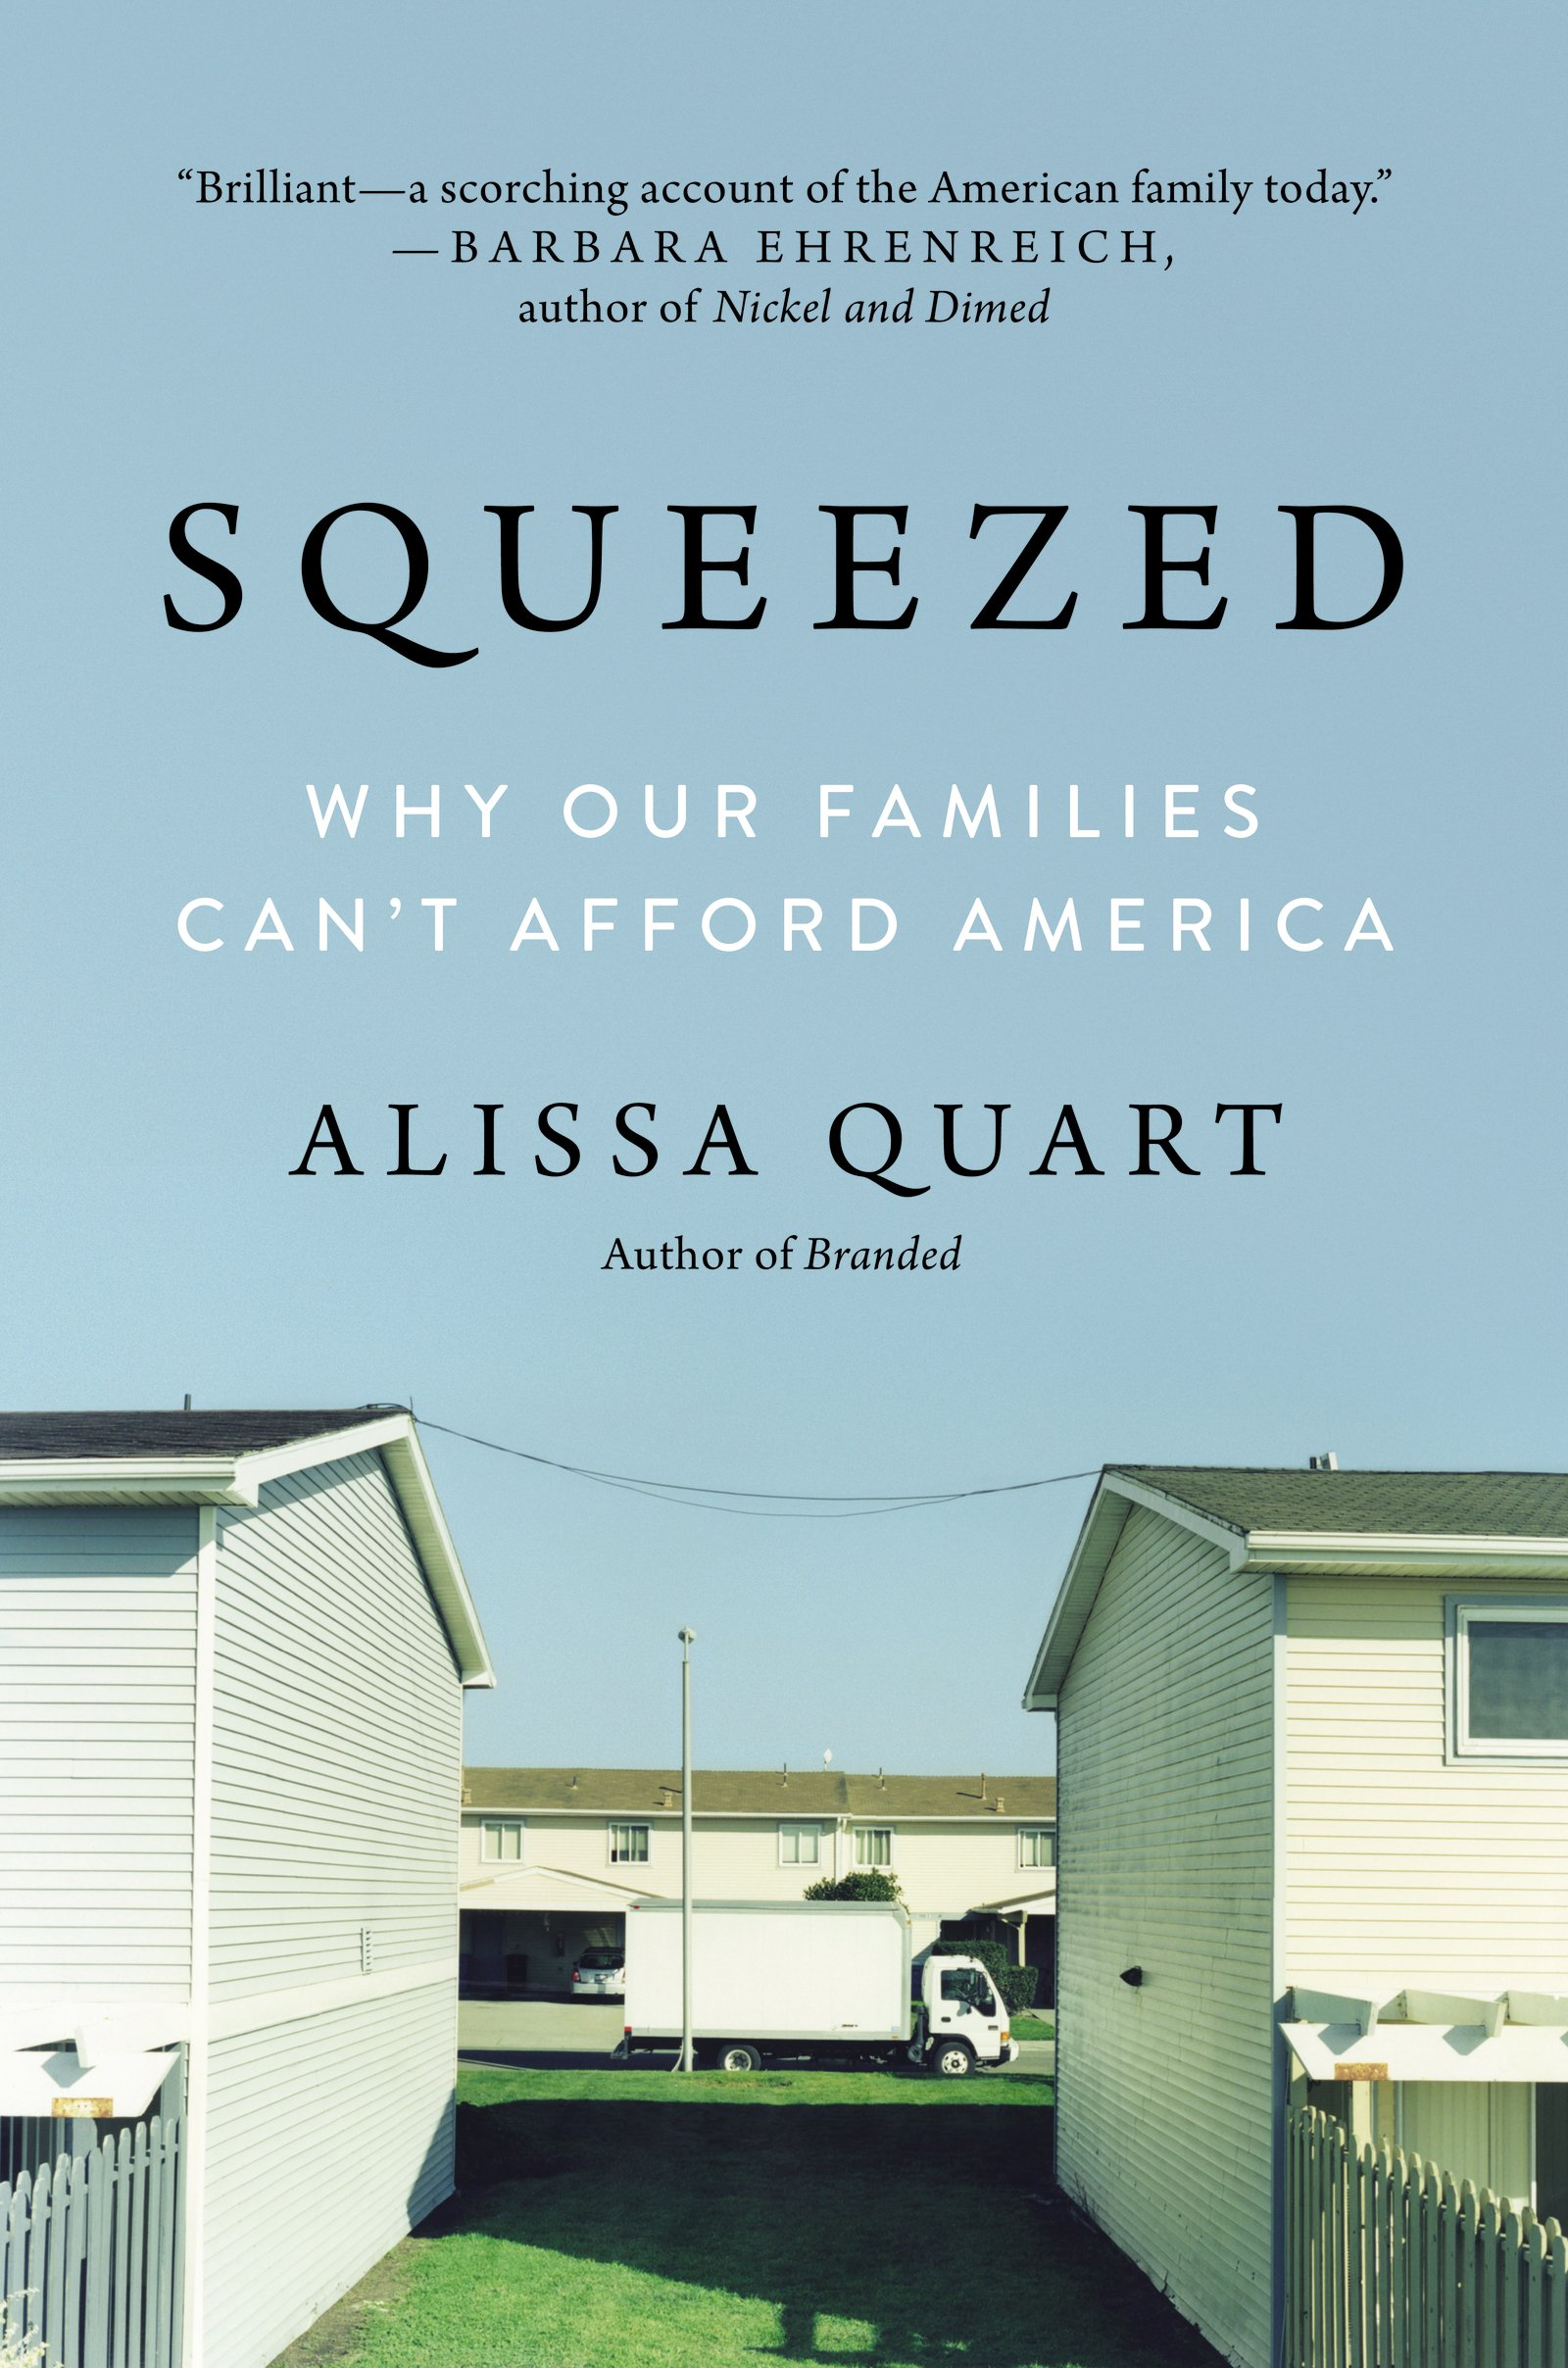 Squeezed: Why Our Families Can't Afford America Cover Art